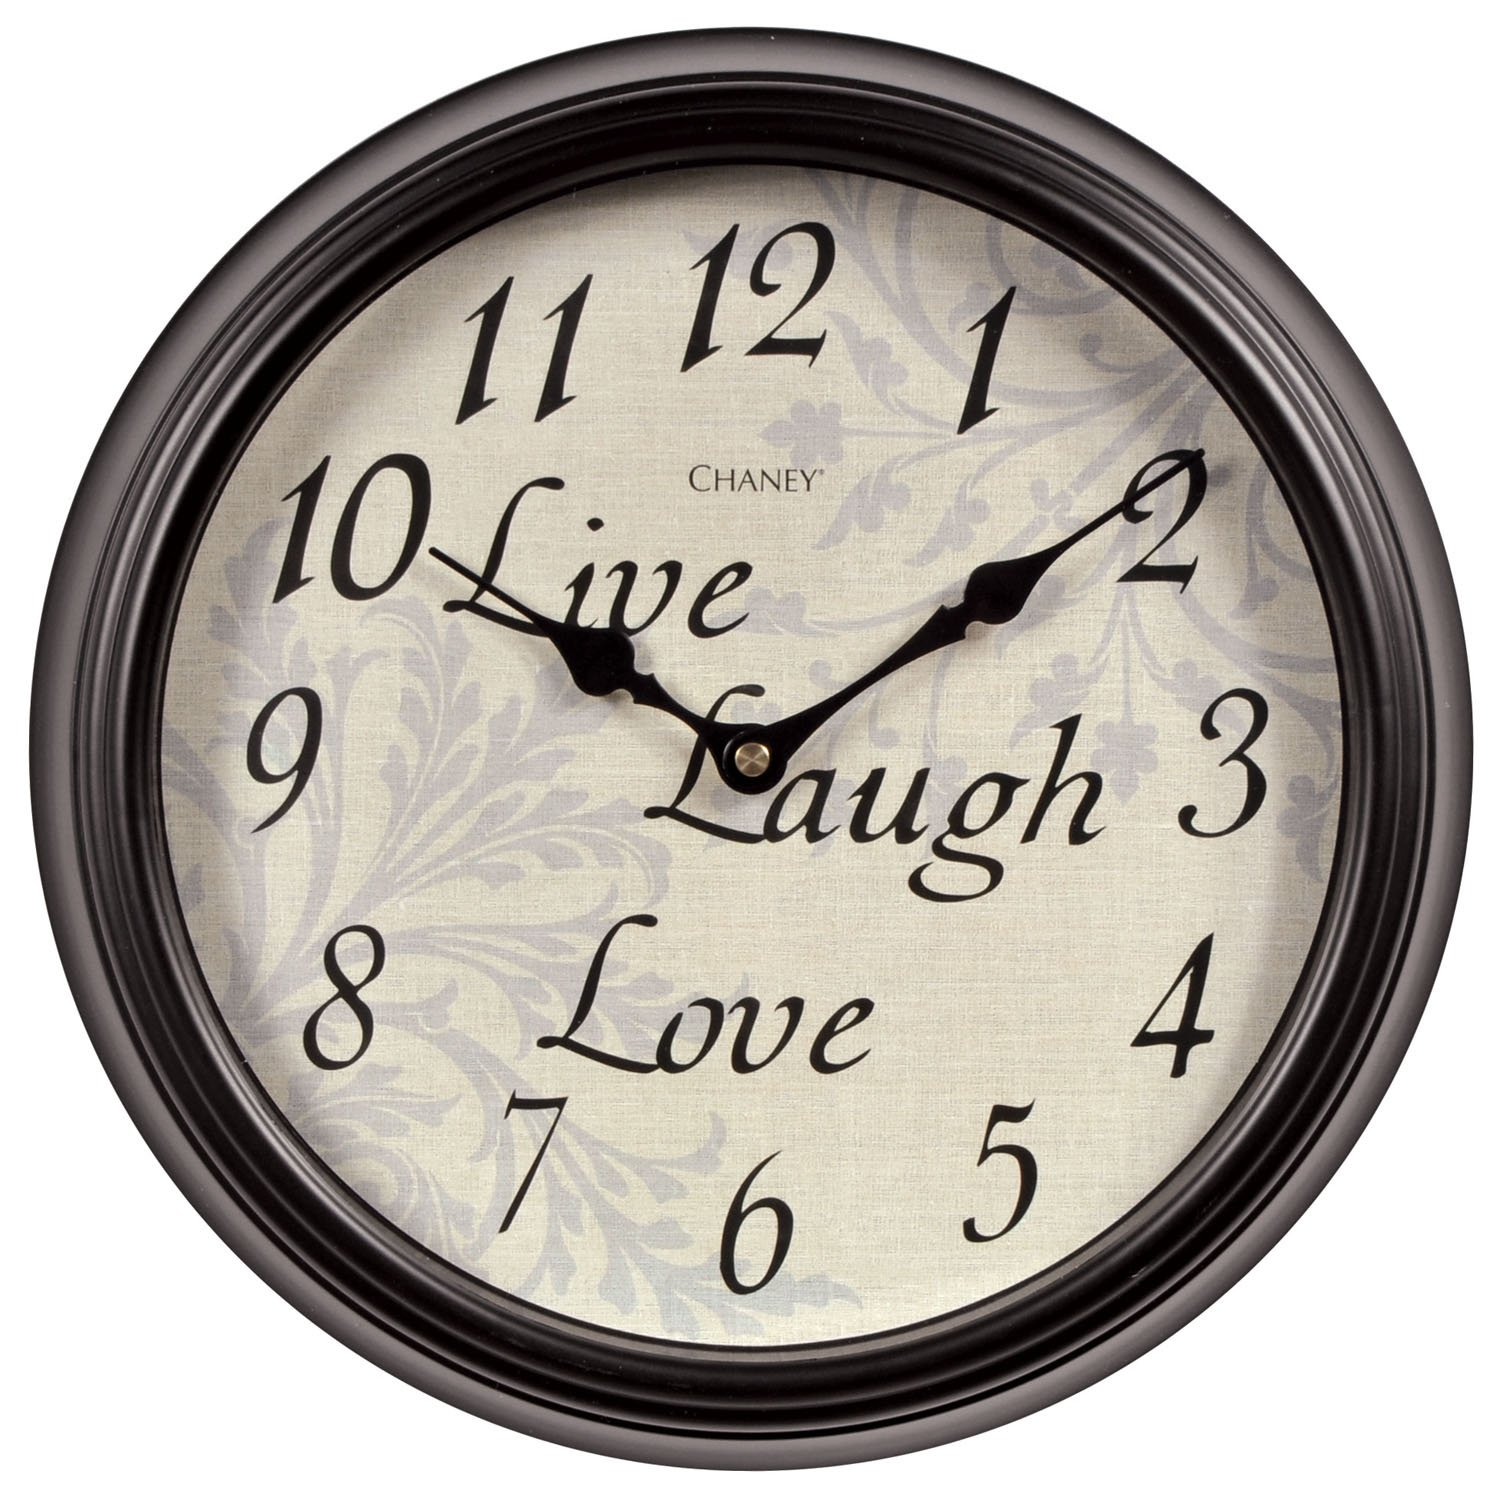 Chaney Instrument Co Live Laugh Love Sentiments Wall Clock